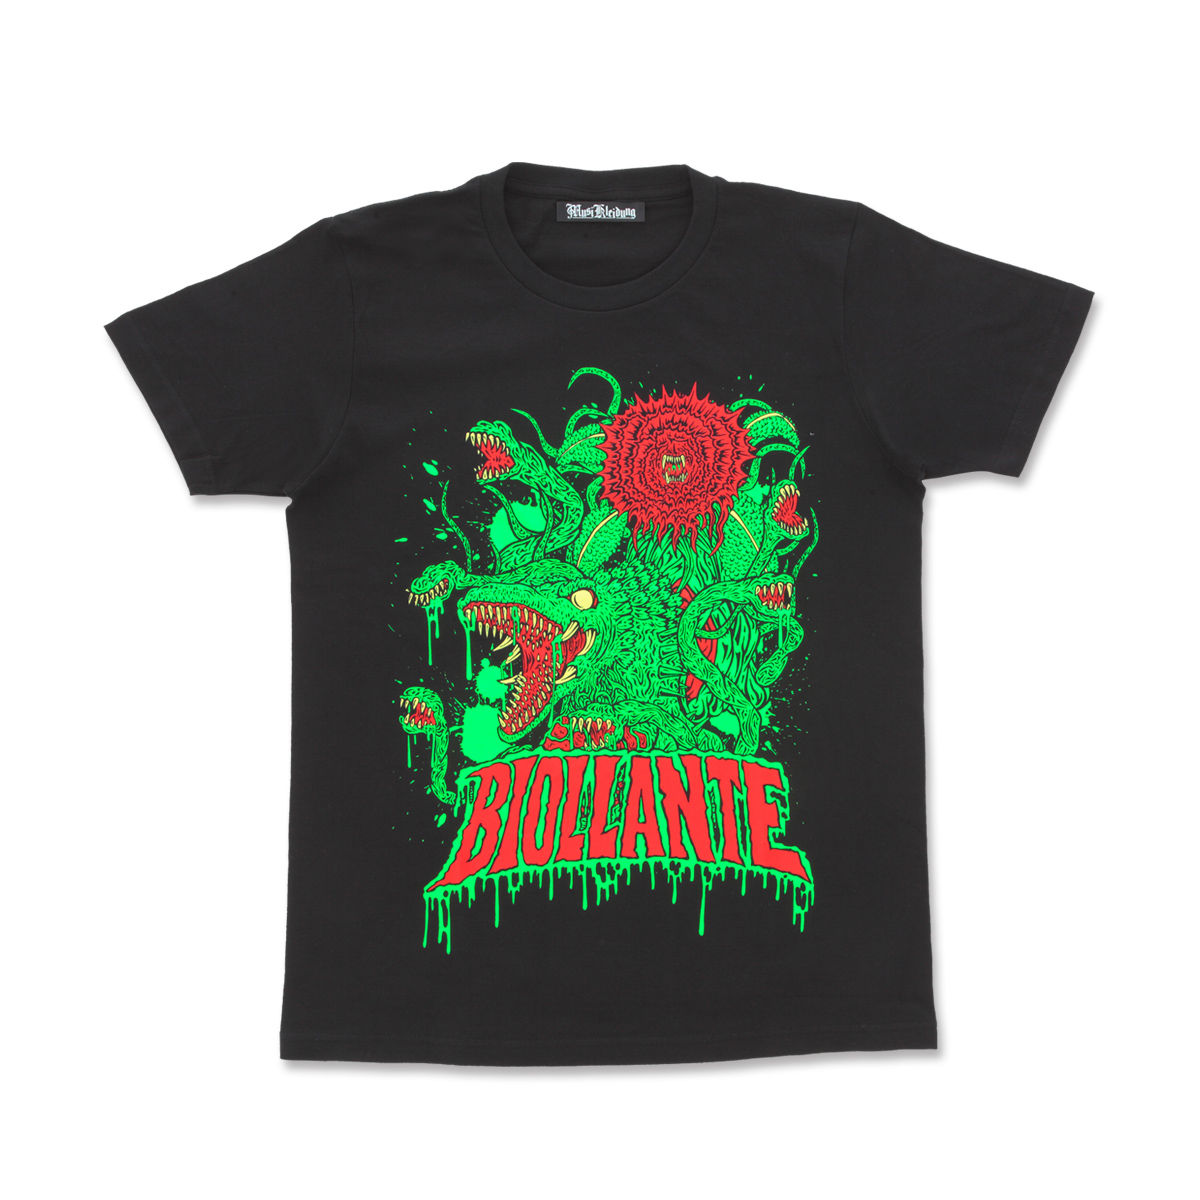 Biollante feat. STUDIO696 T-shirt